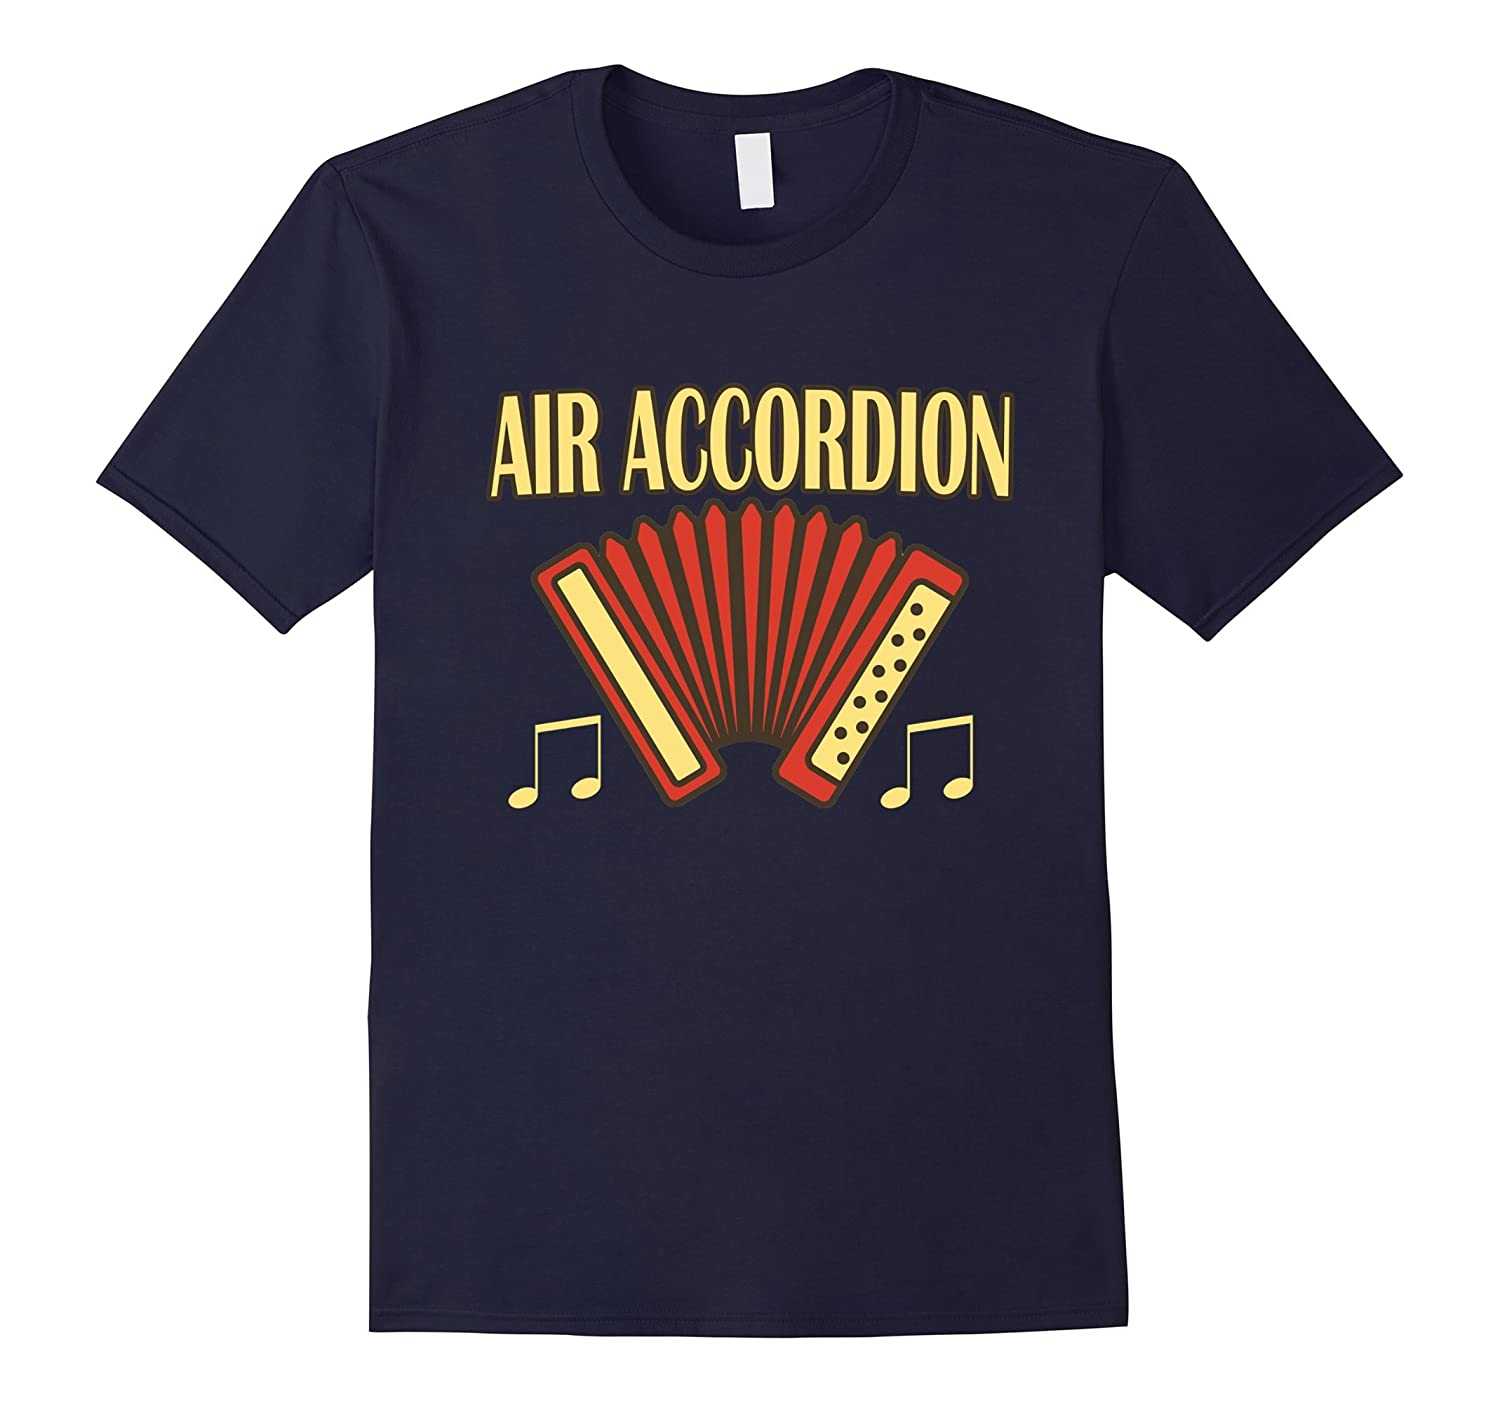 AIR Accordion Fun Musical Instrument Band T-Shirt-BN